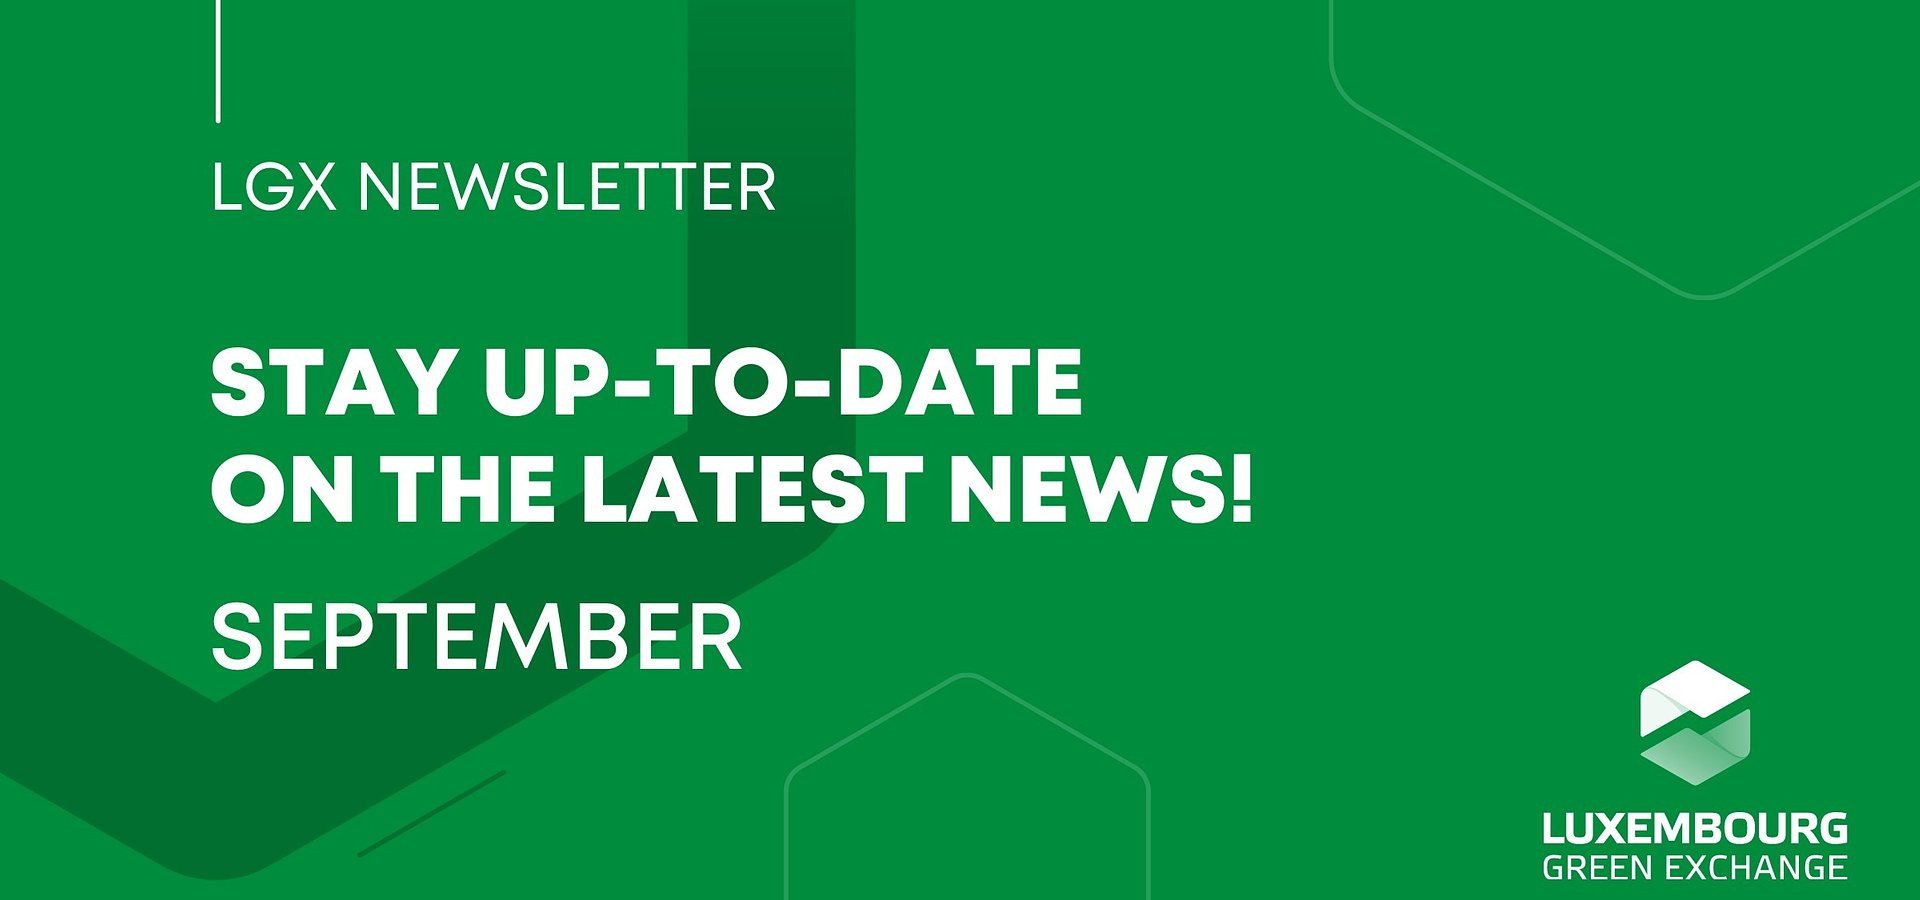 Welcome to the first edition of LGX Newsletter!